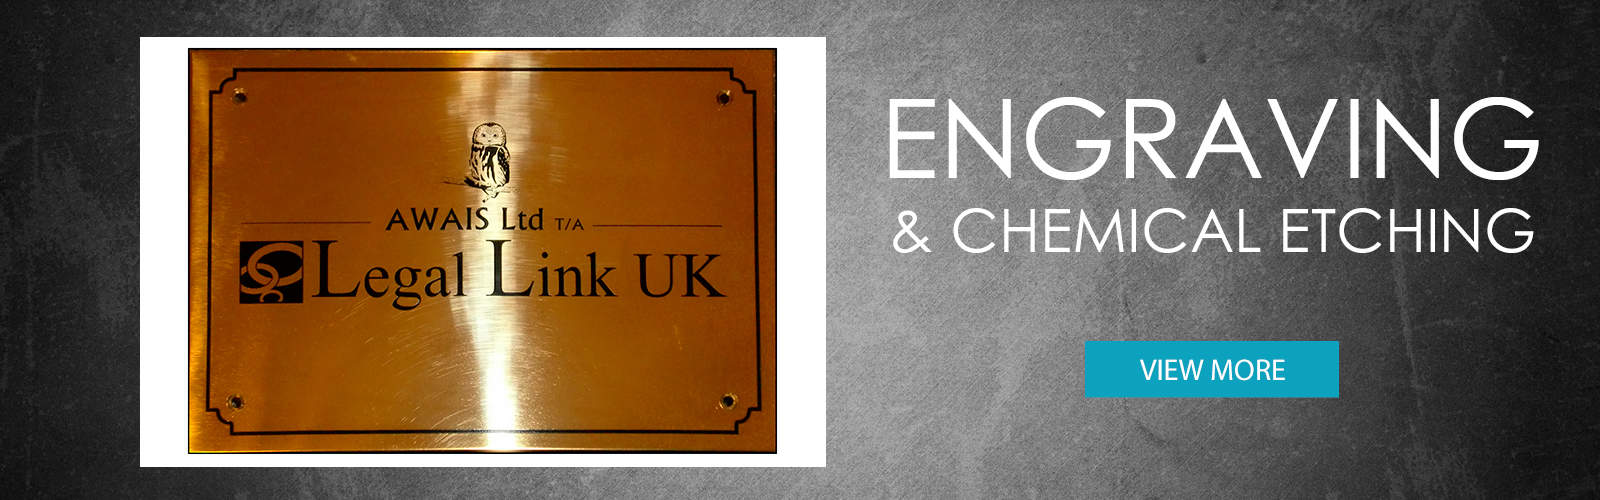 Engraving and Chemical Etching. Entire design and manufacturing service for engraved plaques, signs and labels